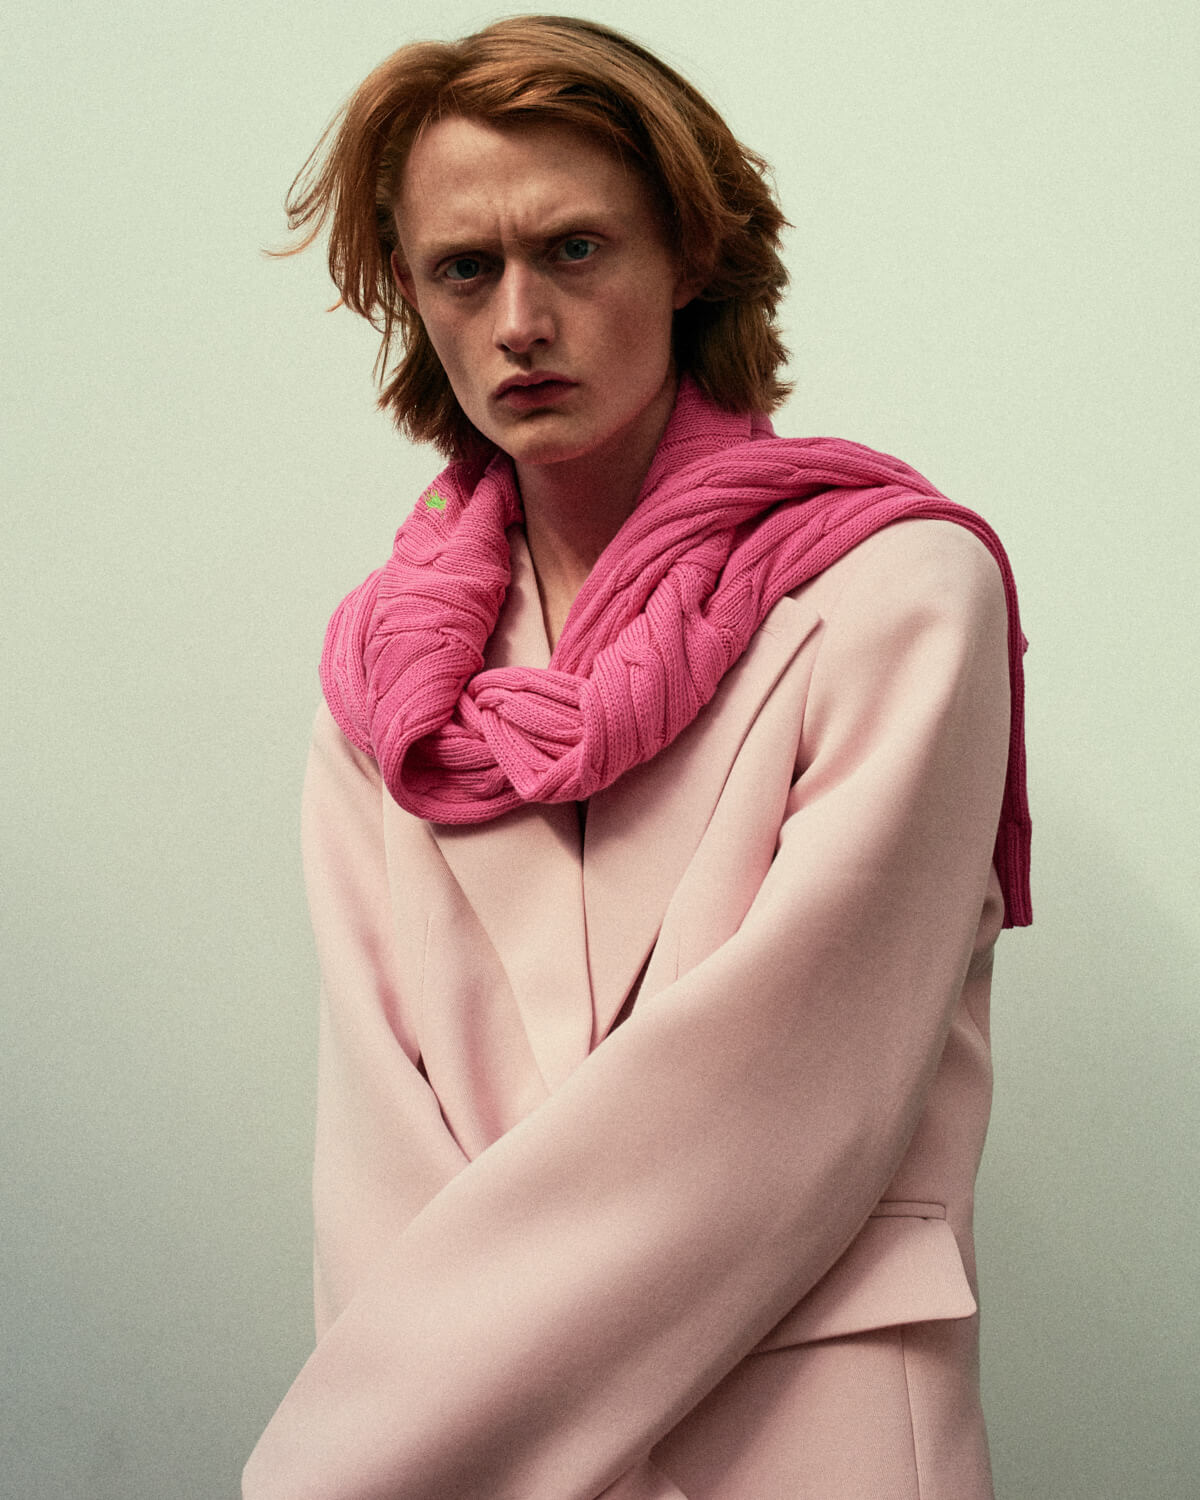 Lad, baggy pink jacket by lifestyle photographer Tim Cole